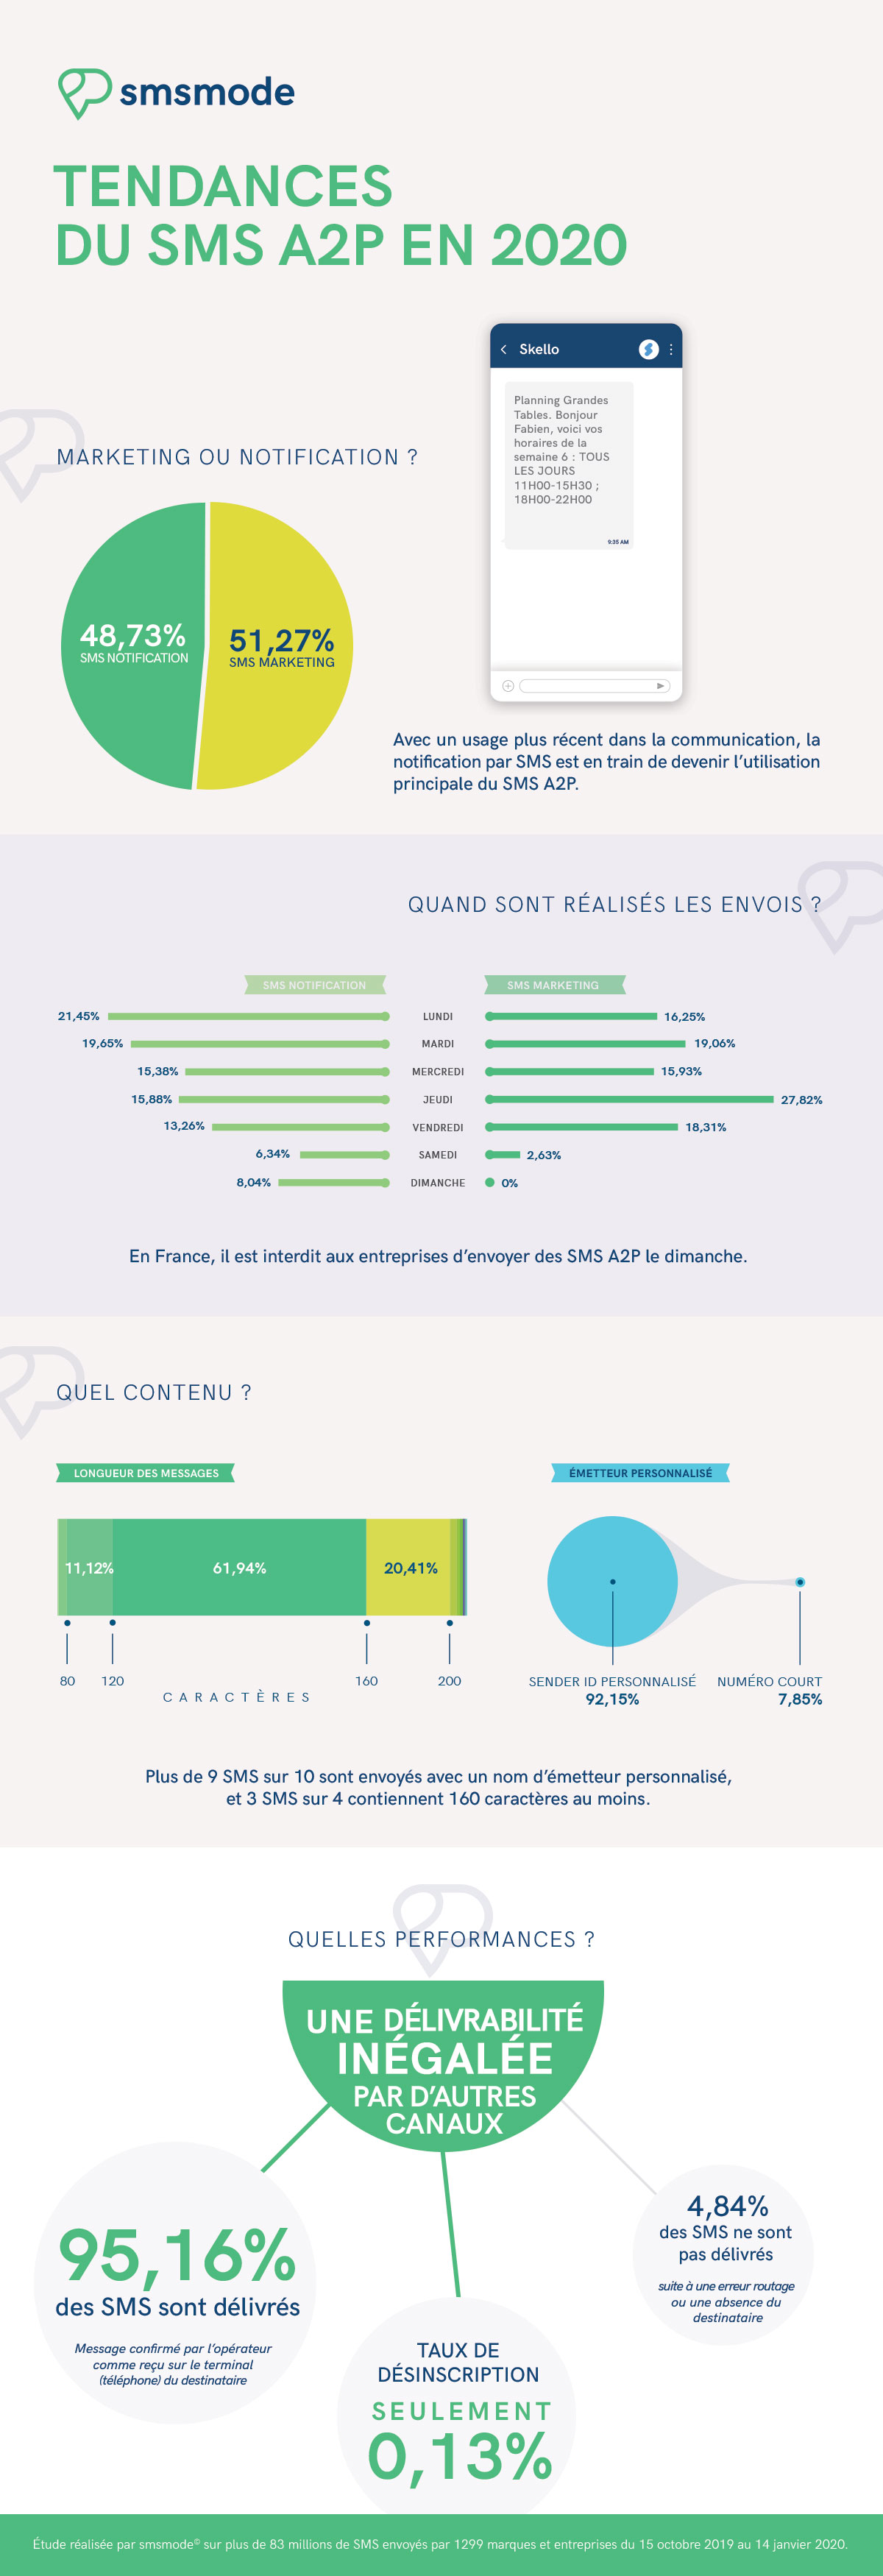 infographie-tendances-sms-A2P-smsmode